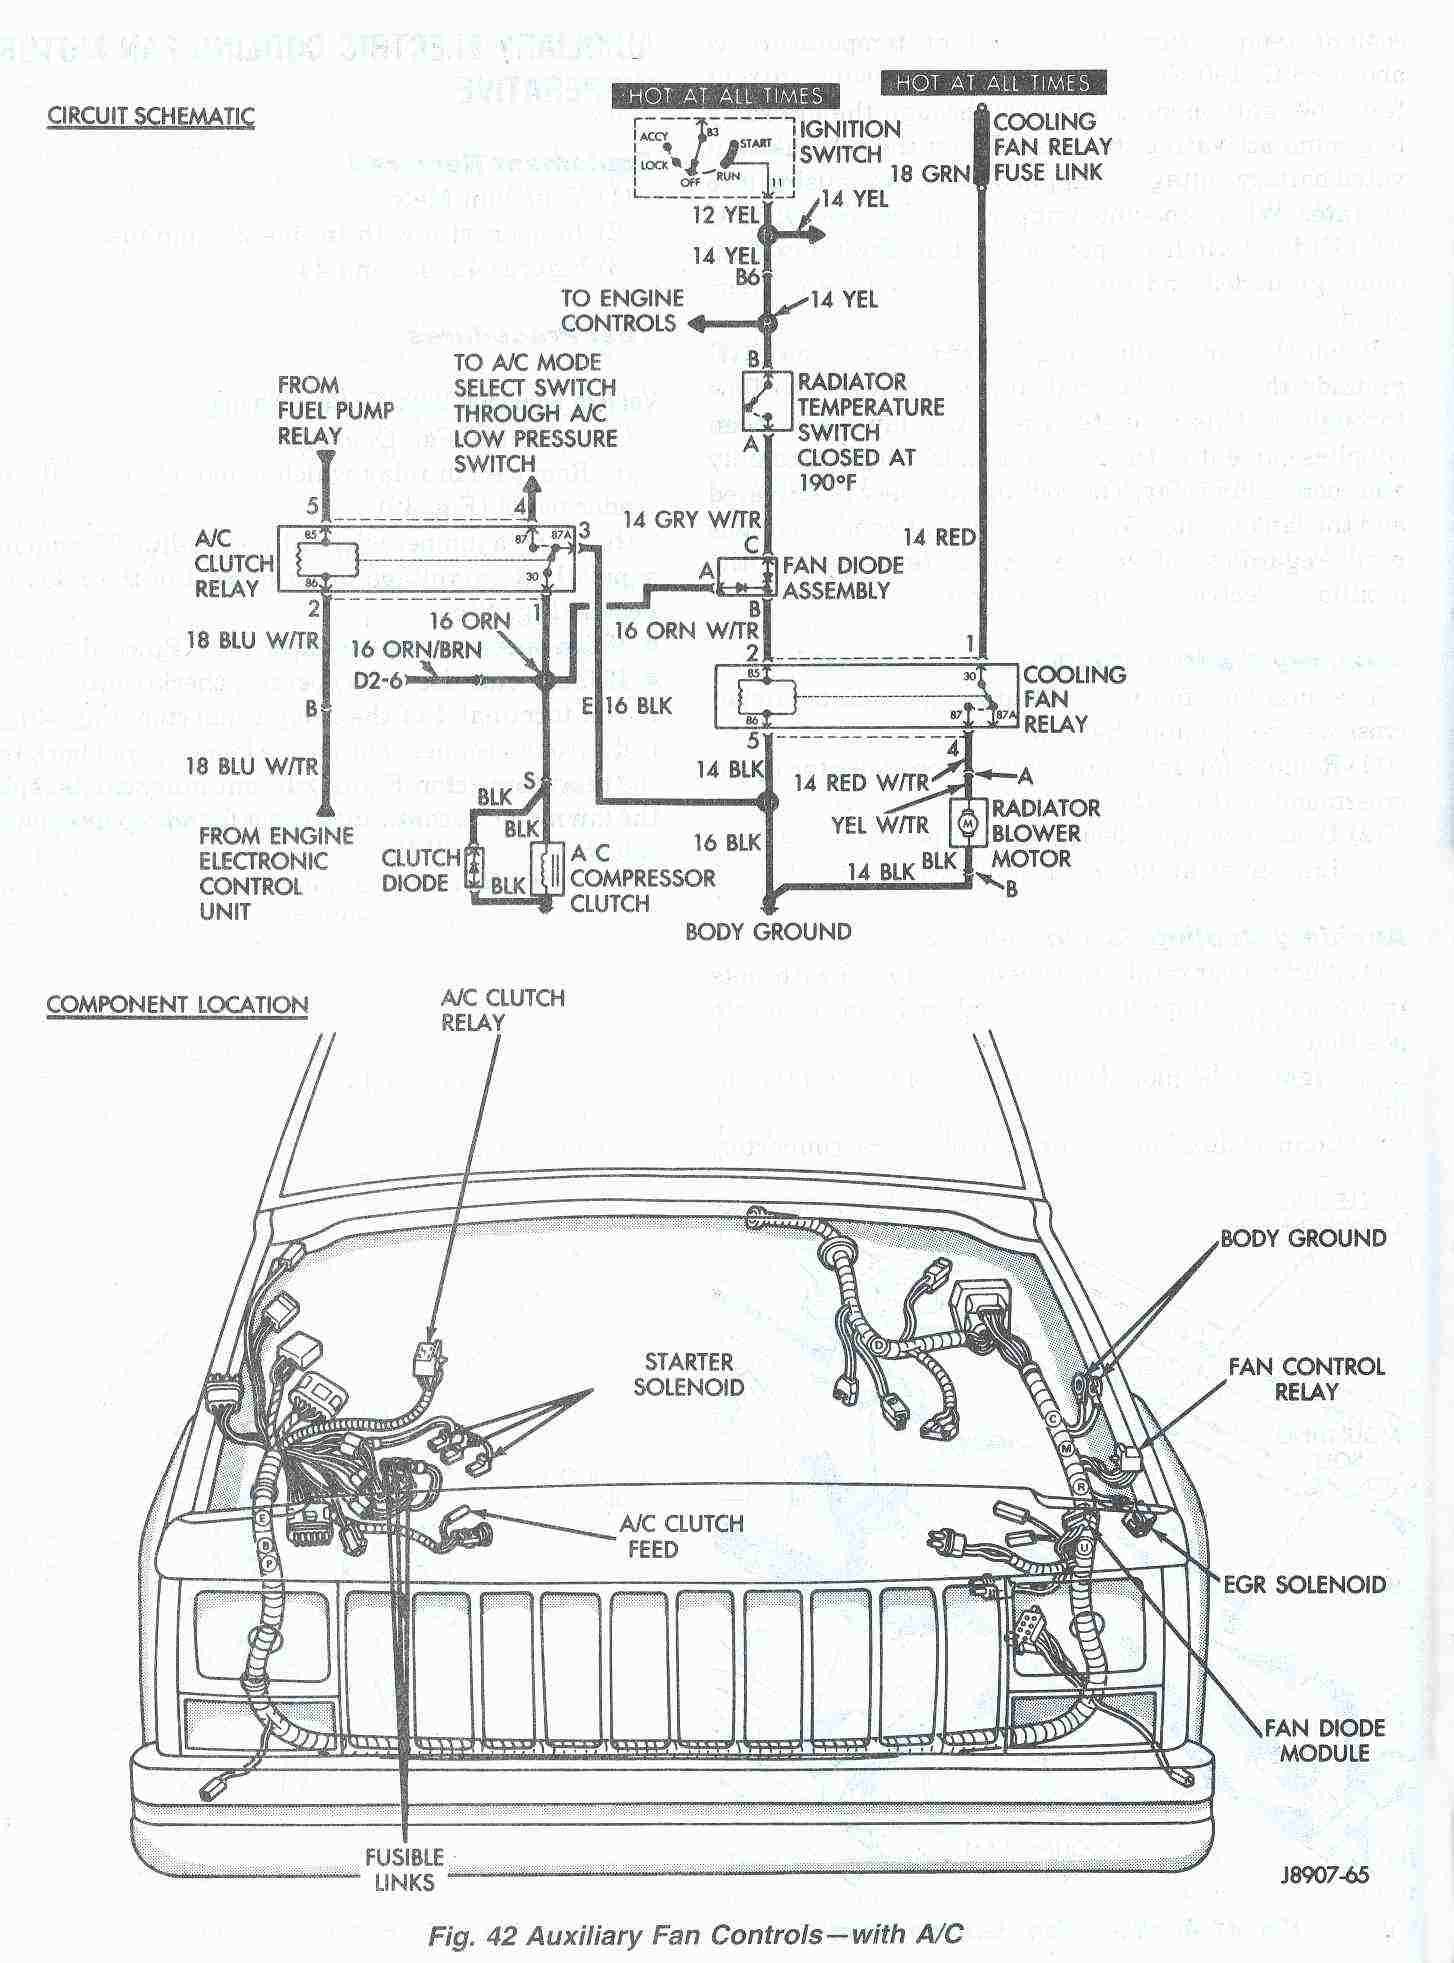 e8c83109bad6c41d377df8c1cb7a8dc4 at the asd relay if vole is not b16 check fuse 20 30 a good there 1996 jeep grand cherokee laredo wiring diagram at virtualis.co